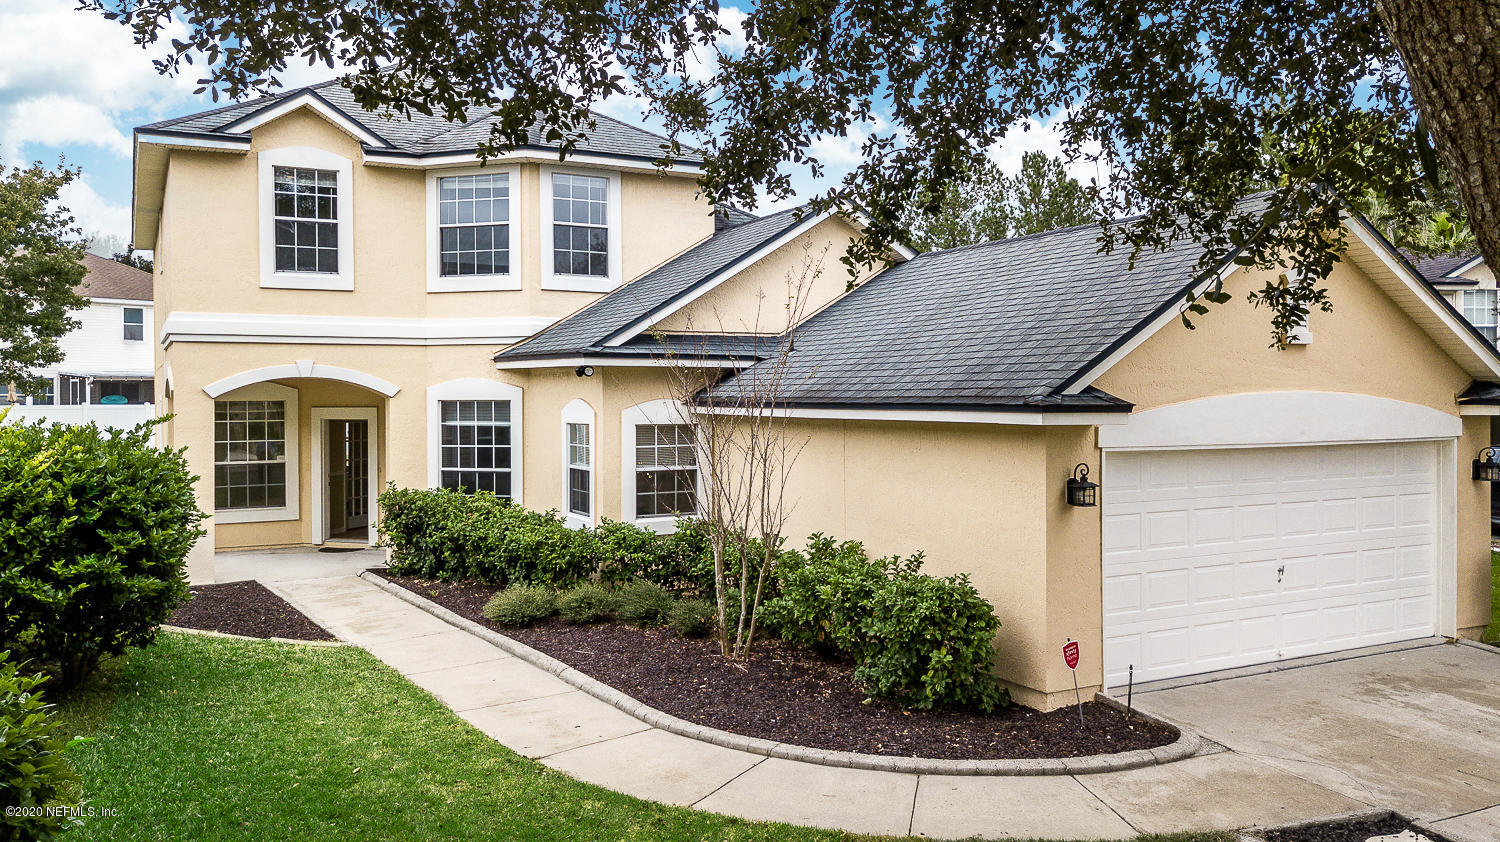 662 TIMBERMILL, ORANGE PARK, FLORIDA 32065, 4 Bedrooms Bedrooms, ,2 BathroomsBathrooms,Residential,For sale,TIMBERMILL,1084061